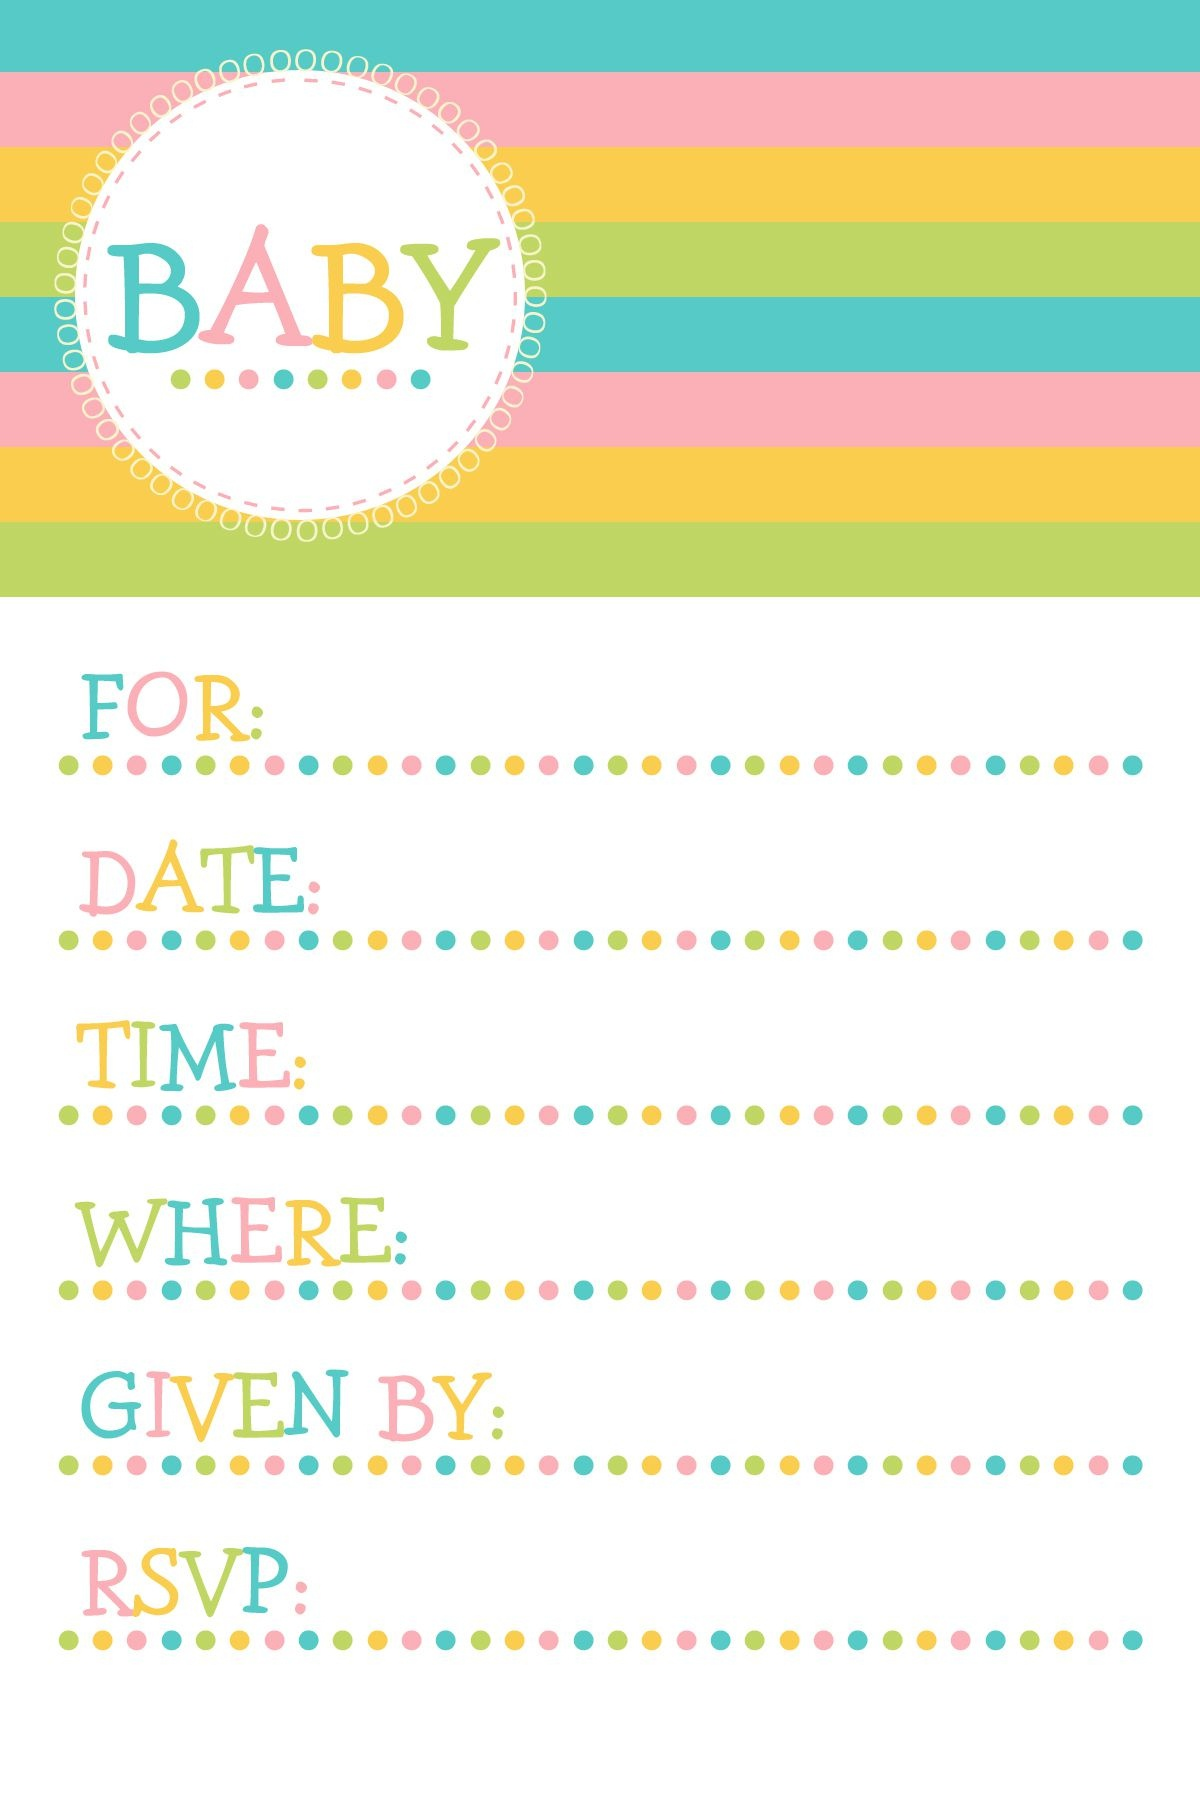 25 Adorable Free Printable Baby Shower Invitations - Free Baby Boy Shower Invitations Printable